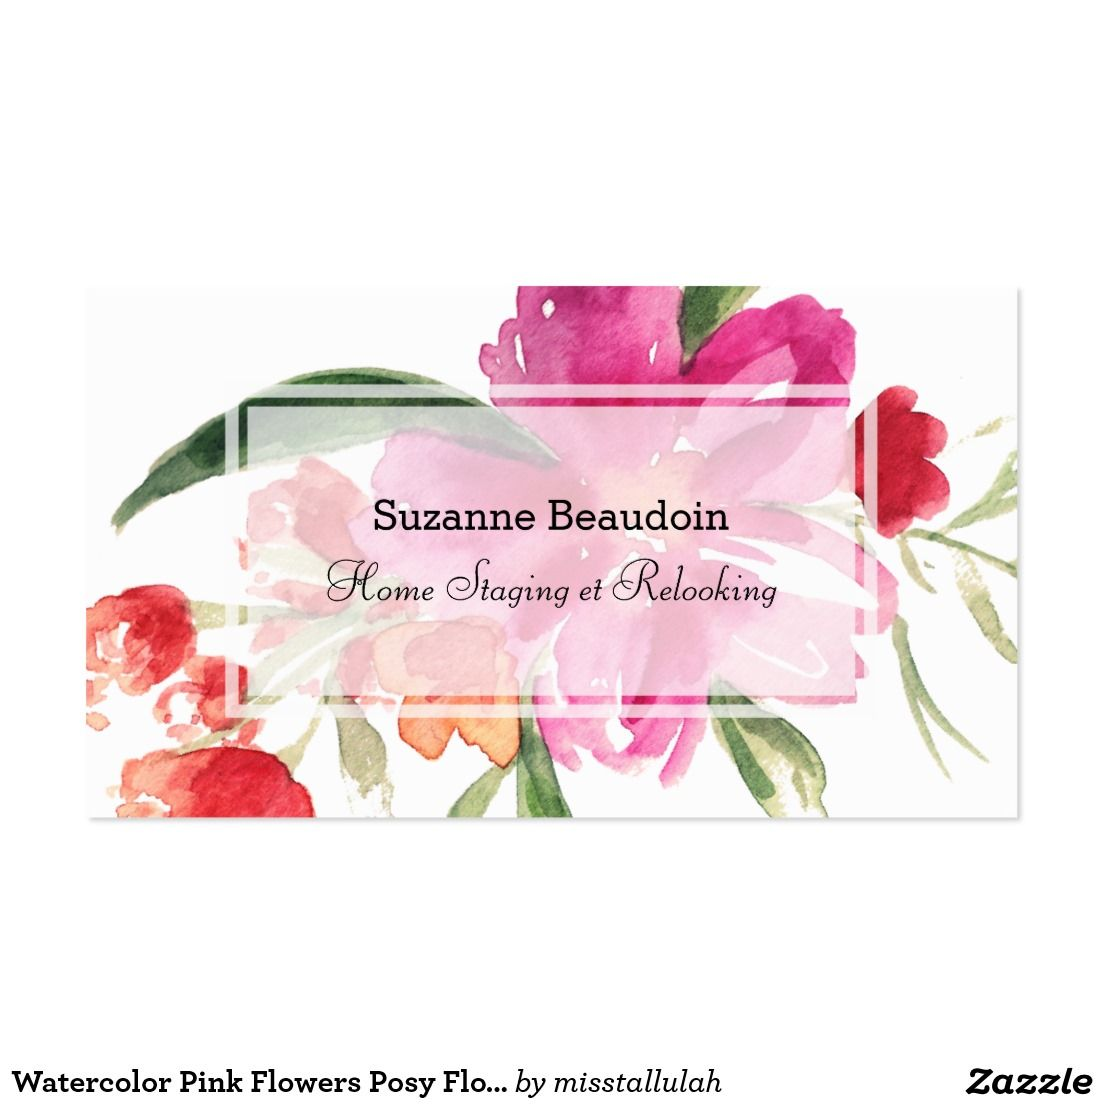 Profile card cartes daffaires pinterest business cards watercolor pink flowers posy floral business card accmission Choice Image